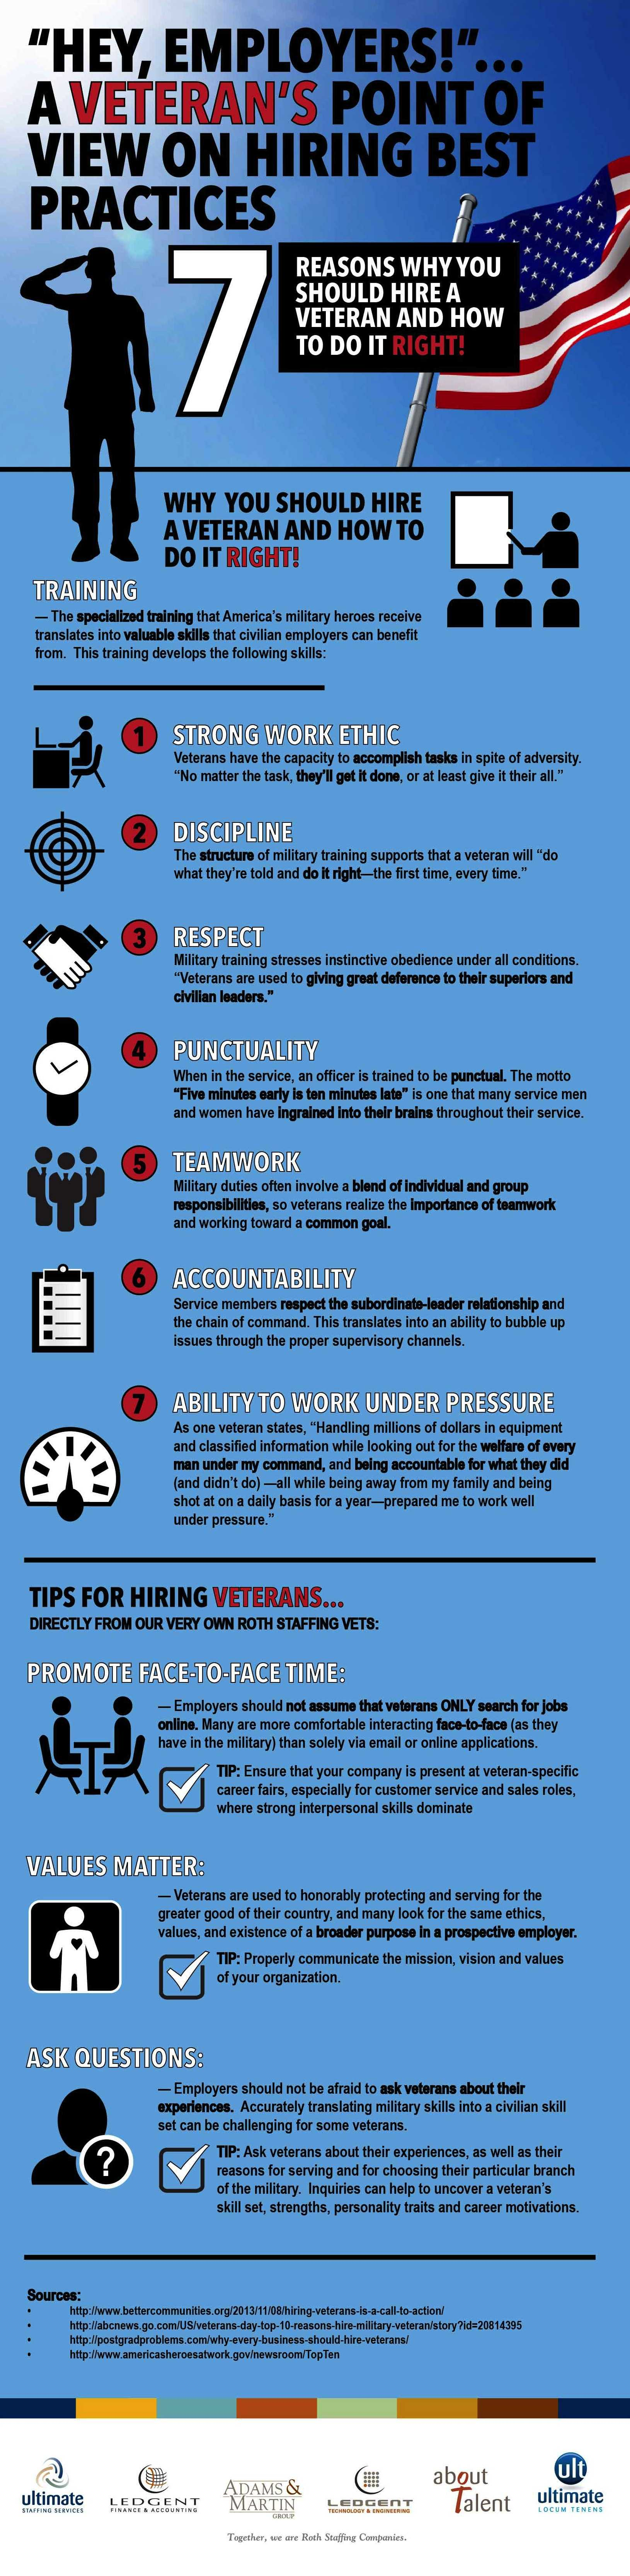 Hey Employers A Veteran S Point Of View On Best Hiring Practices